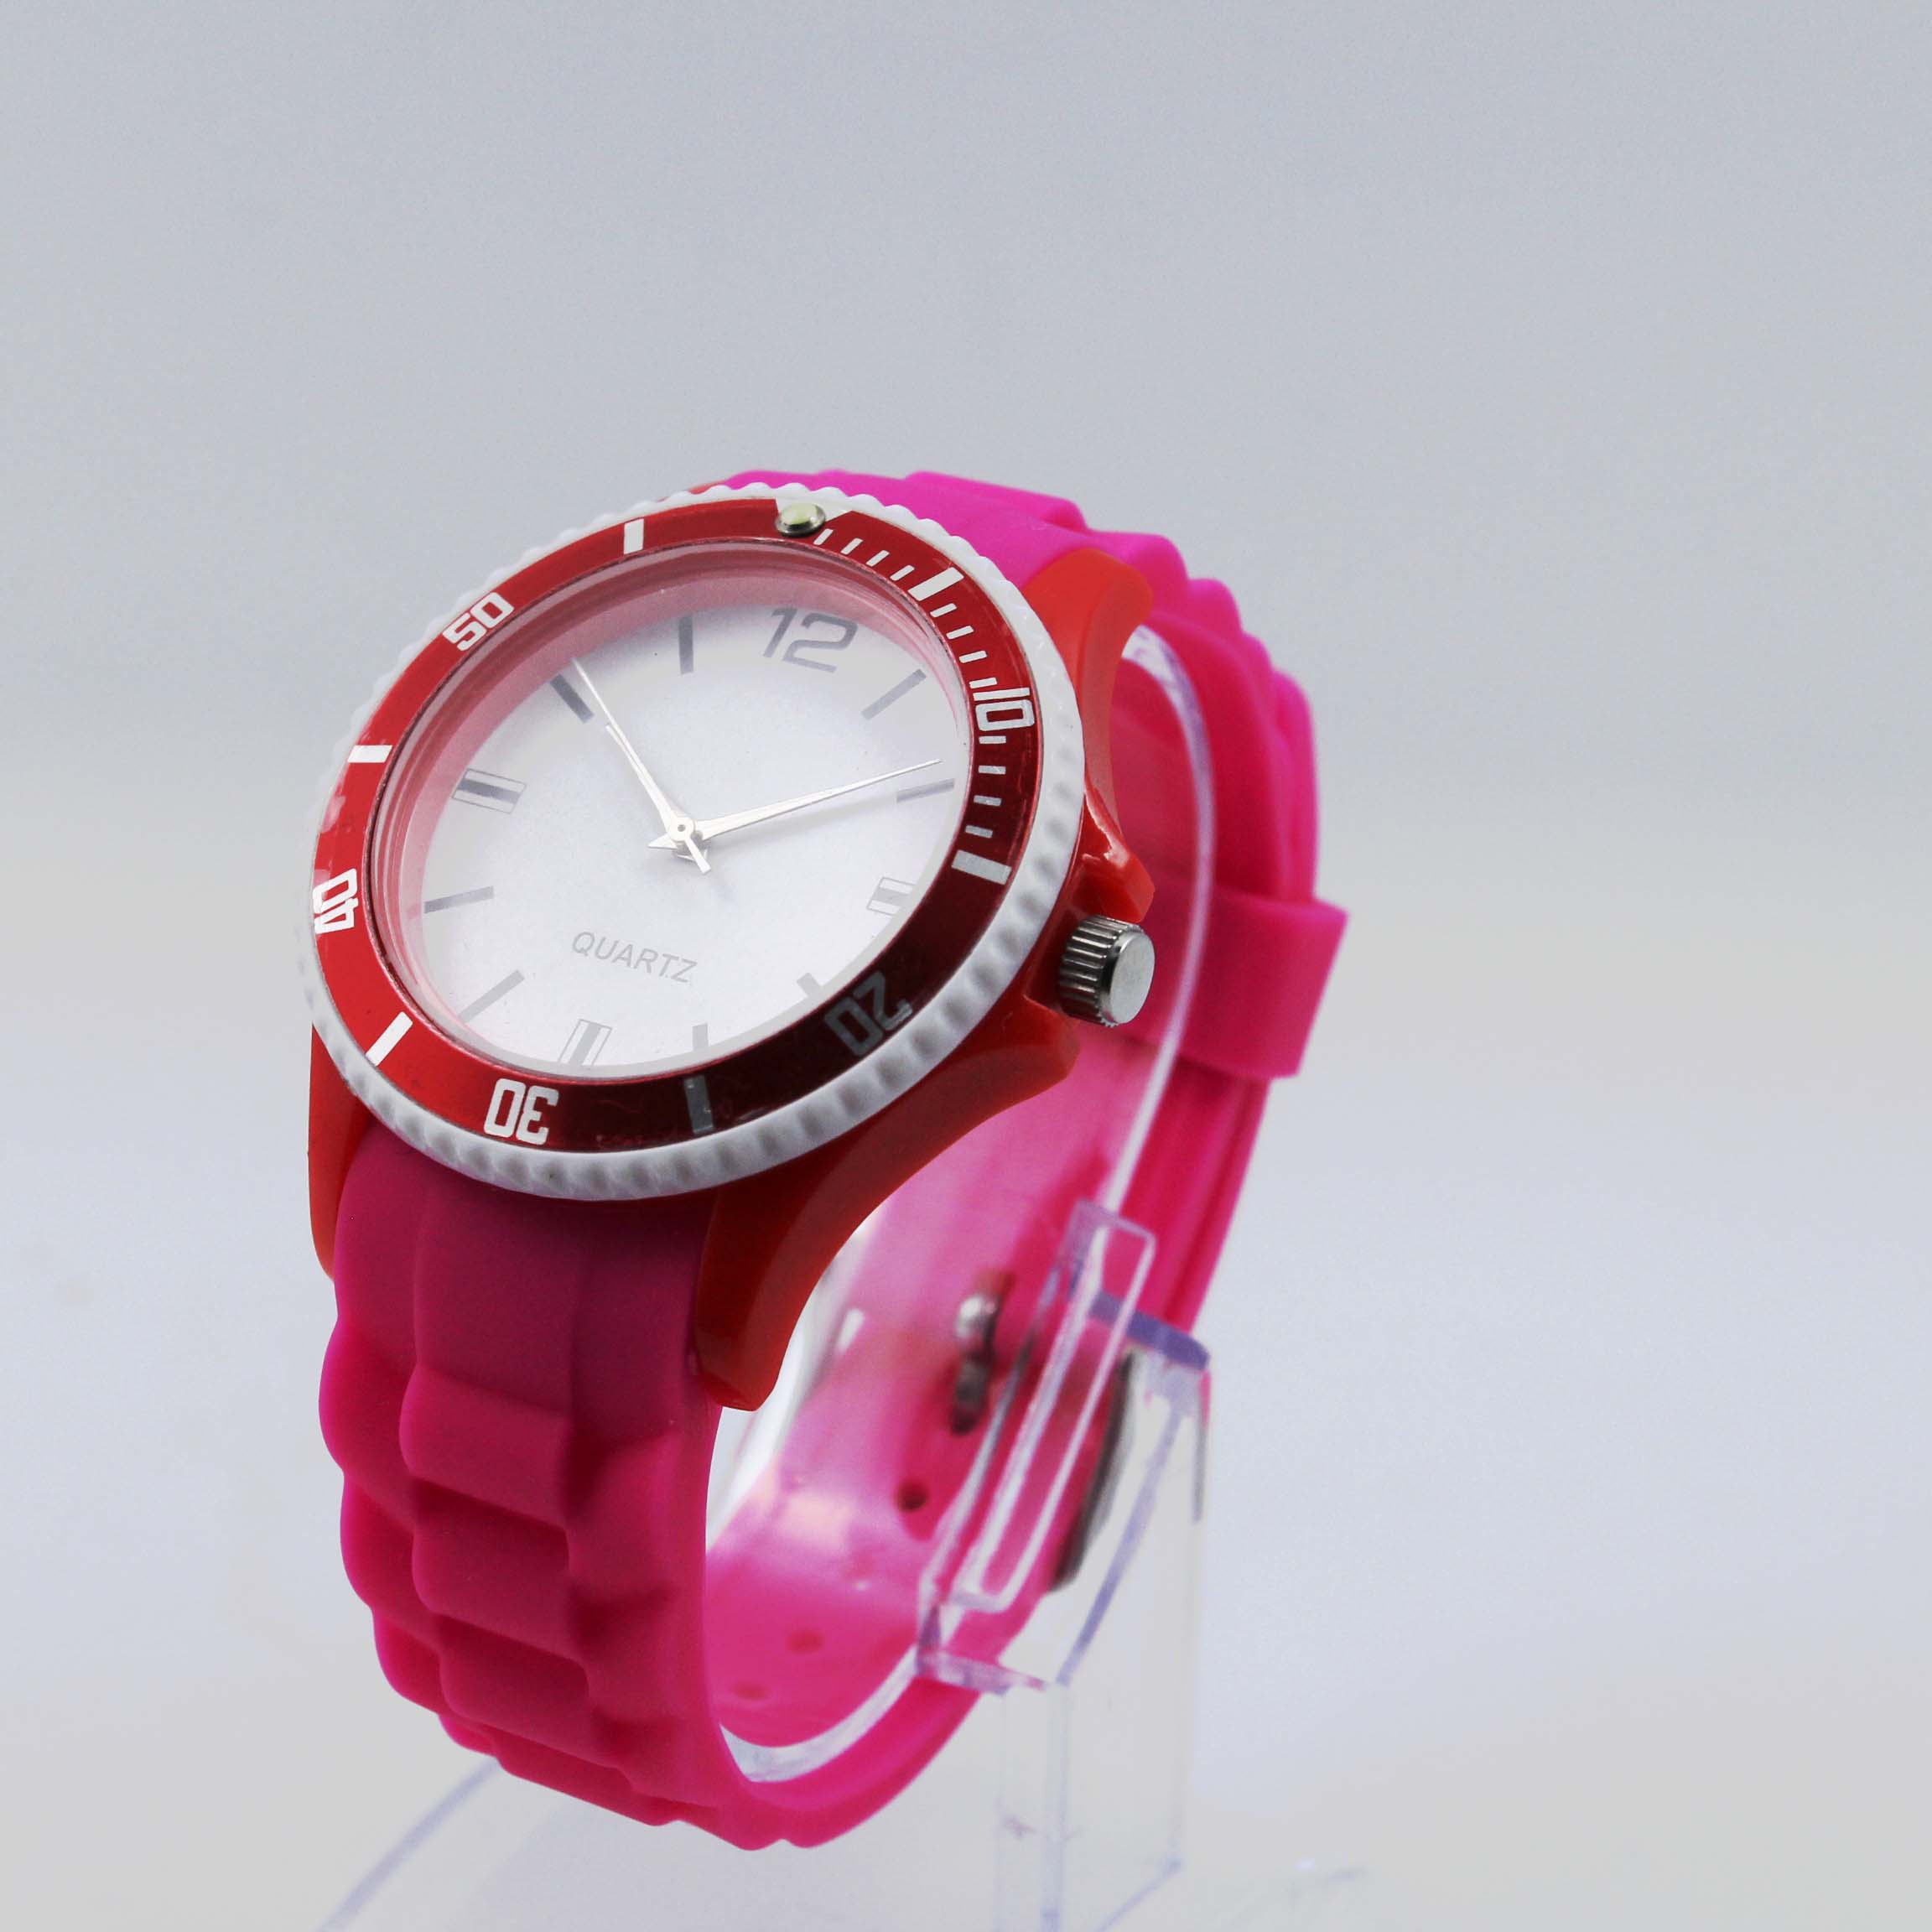 wyatt product pink watch kors silicone gallery lyst in watches silver accessories michael tone normal